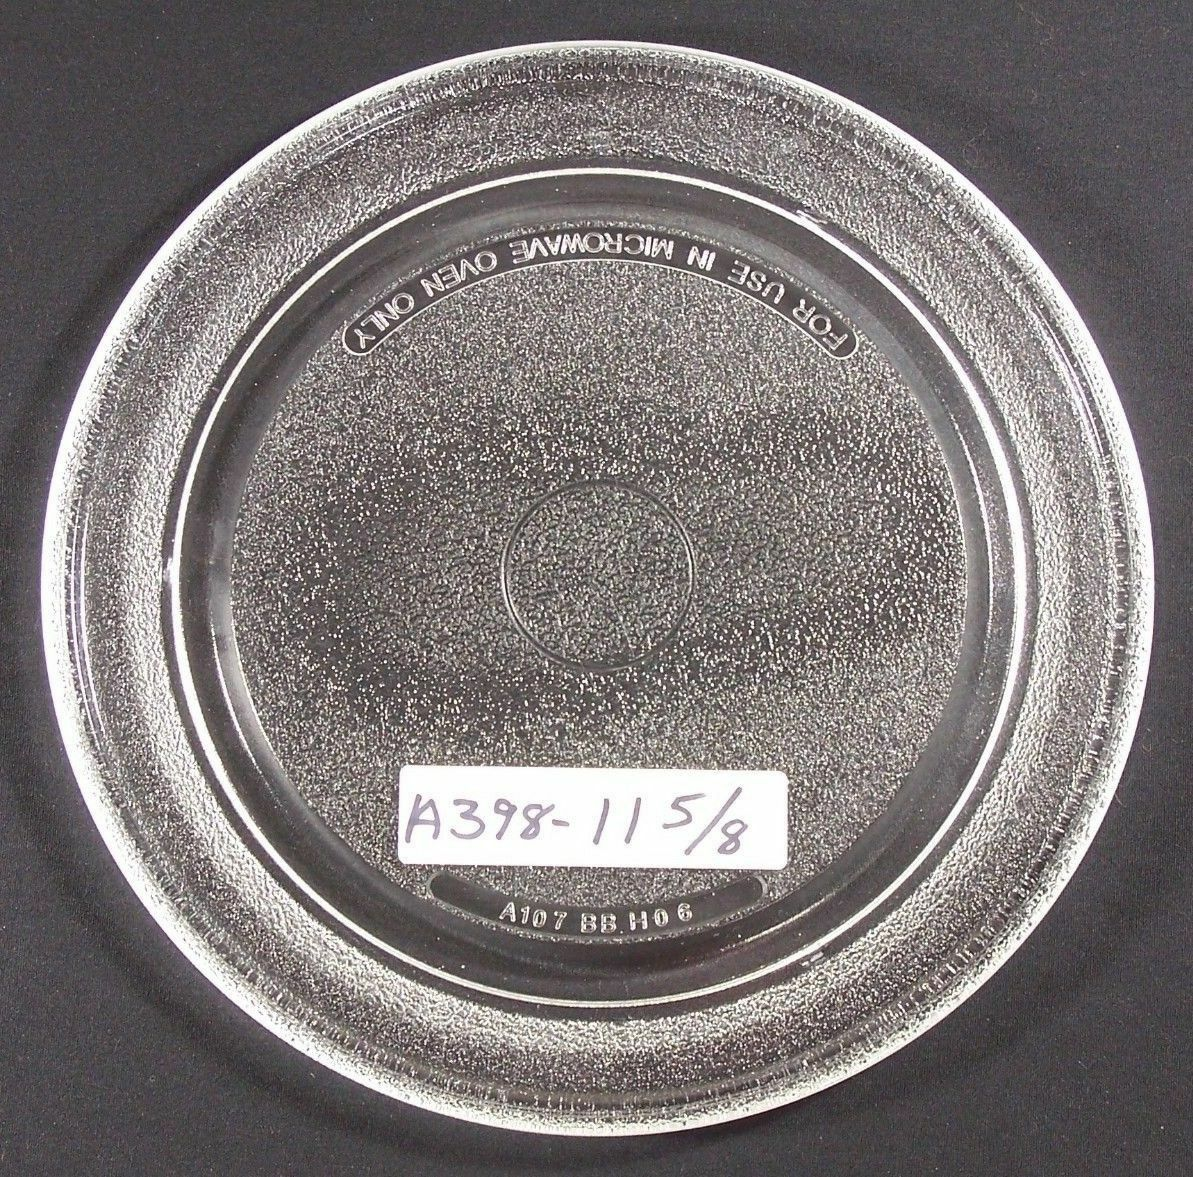 "Primary image for Sharp, GE, 11 1/2"" - 11 5/8, (A107) Microwave Glass turntable plate (9"" track)"